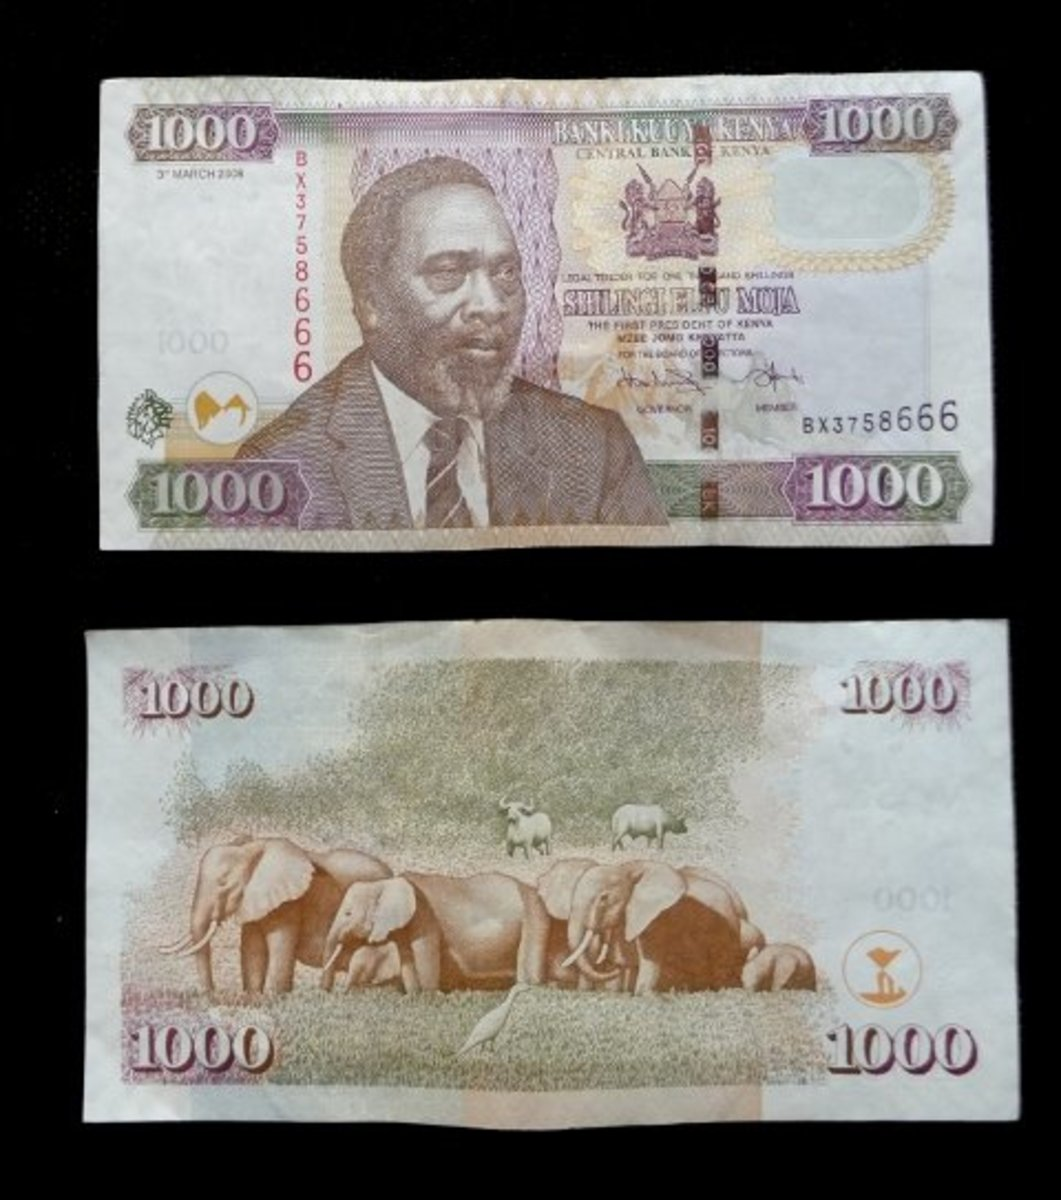 A one thousand Kenya Shillings note